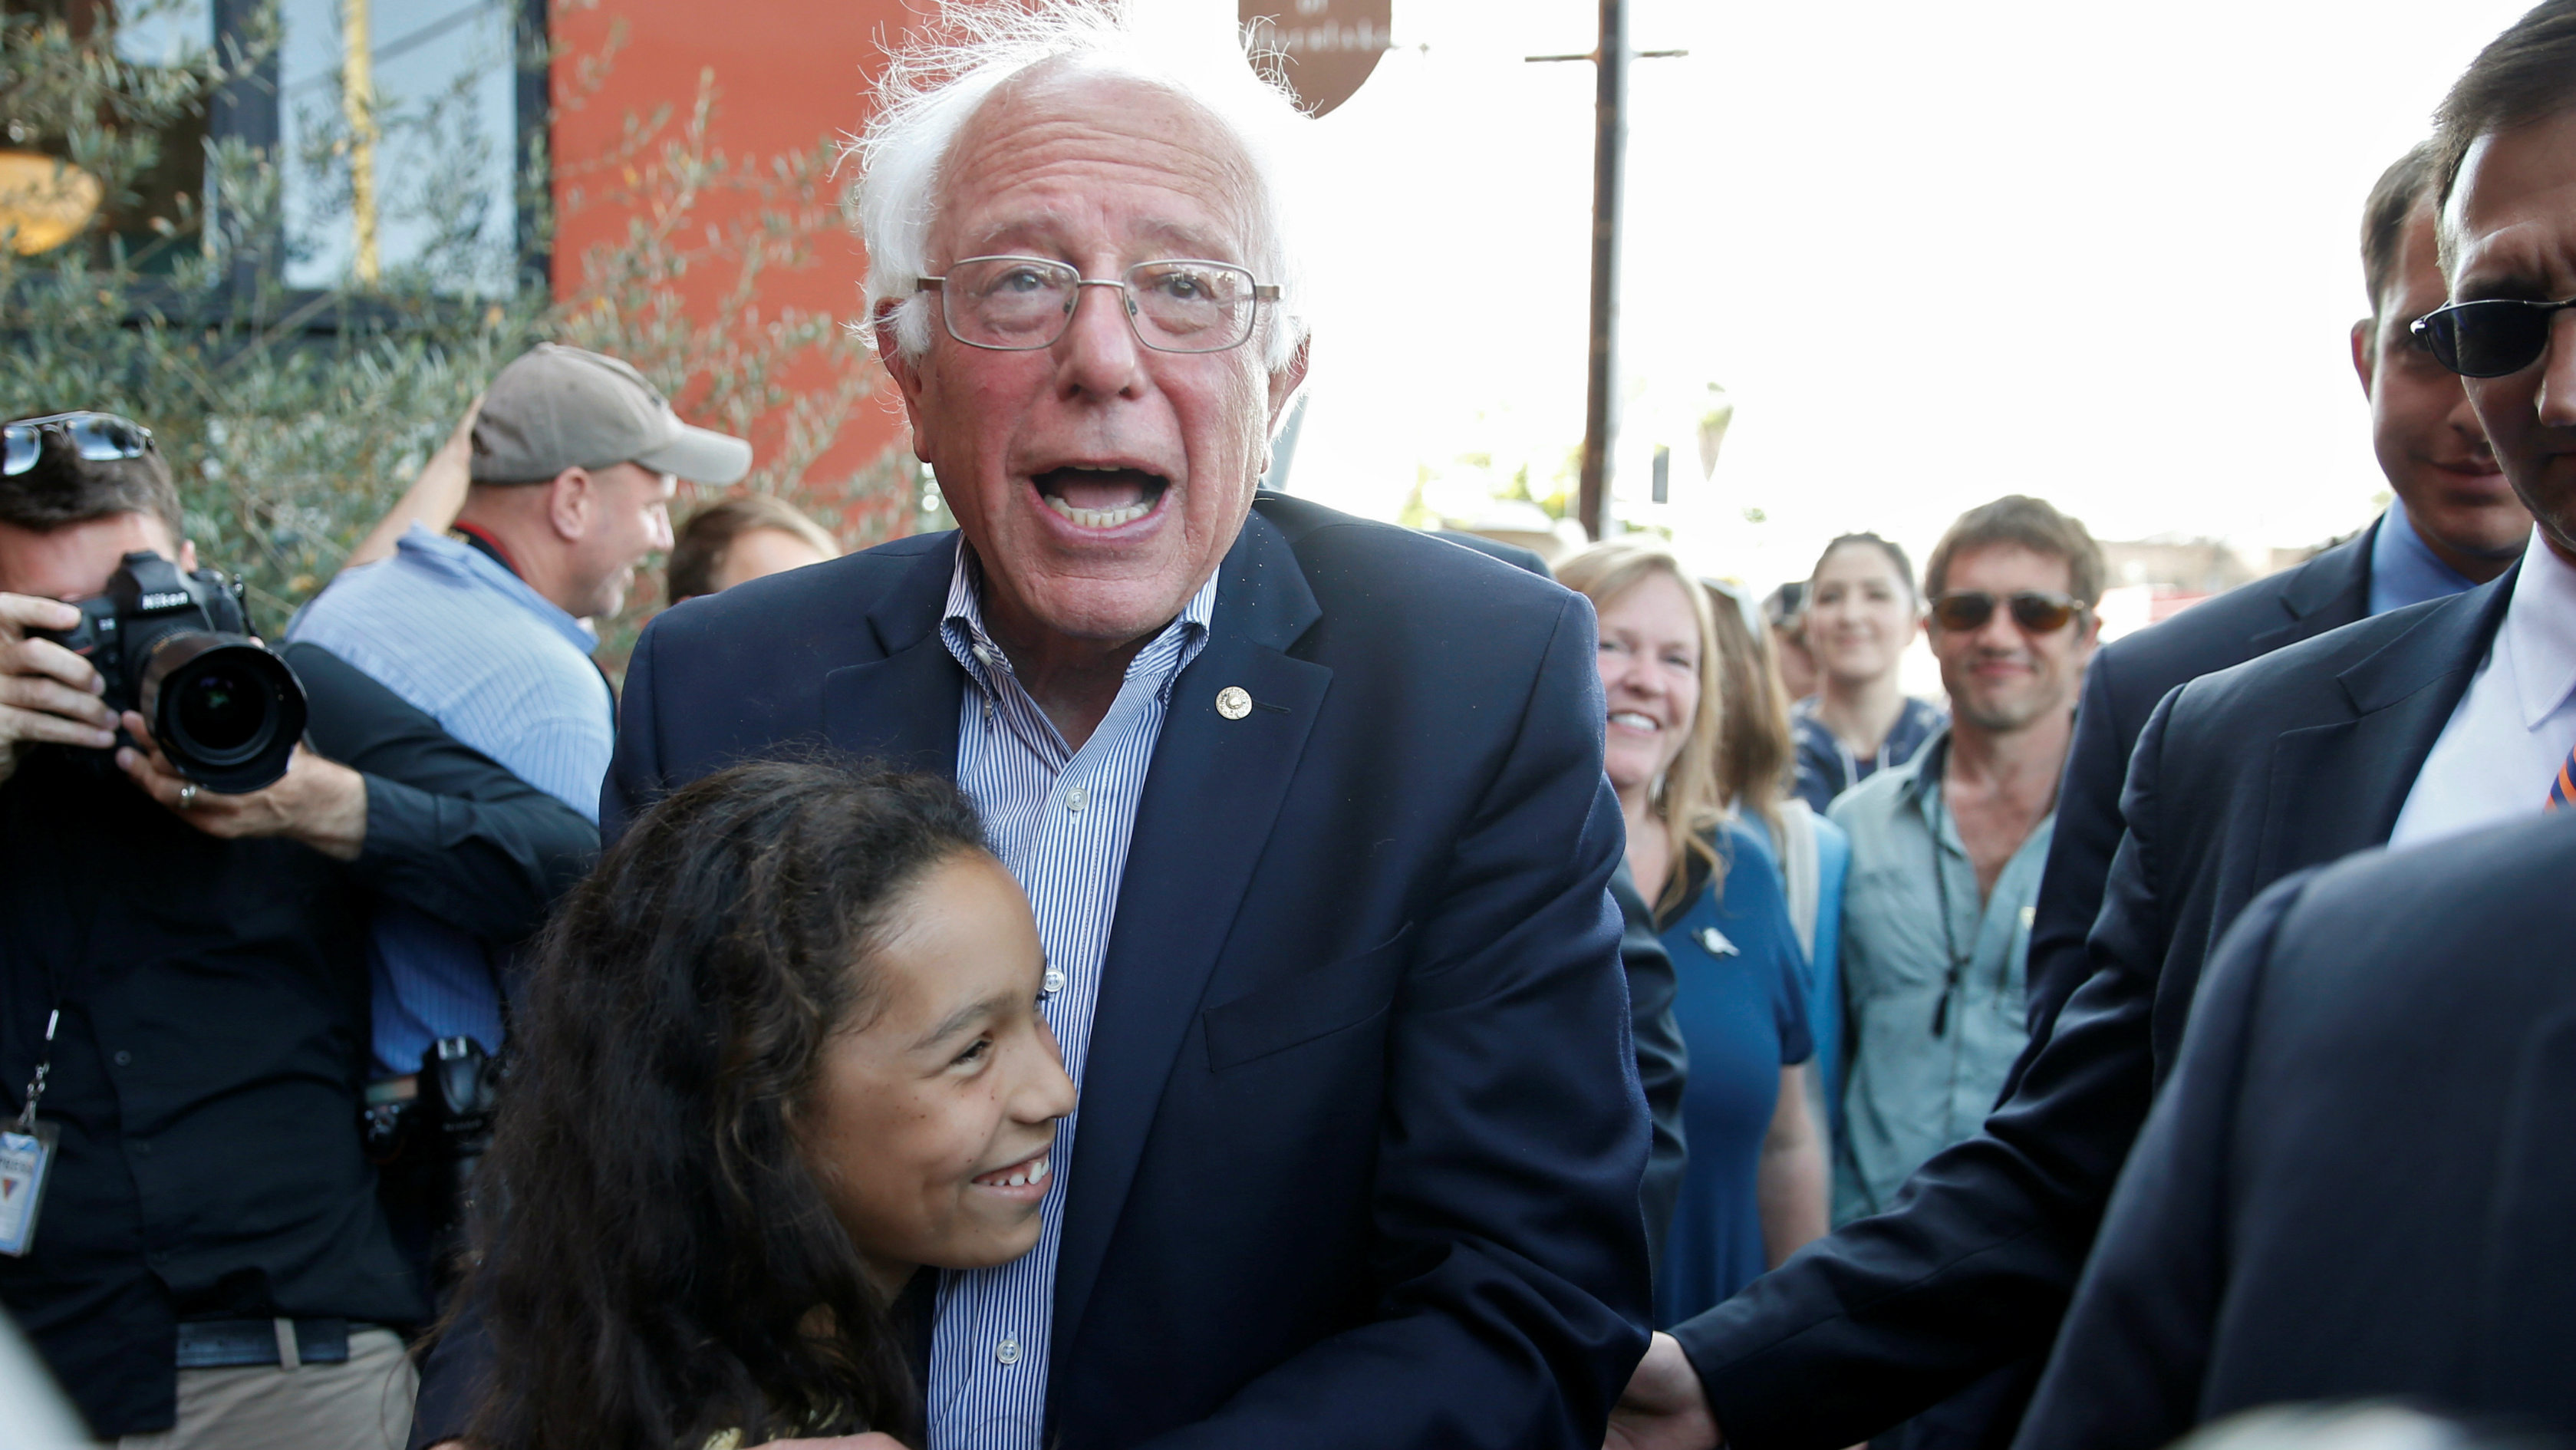 Bernie Sanders hugging a child.